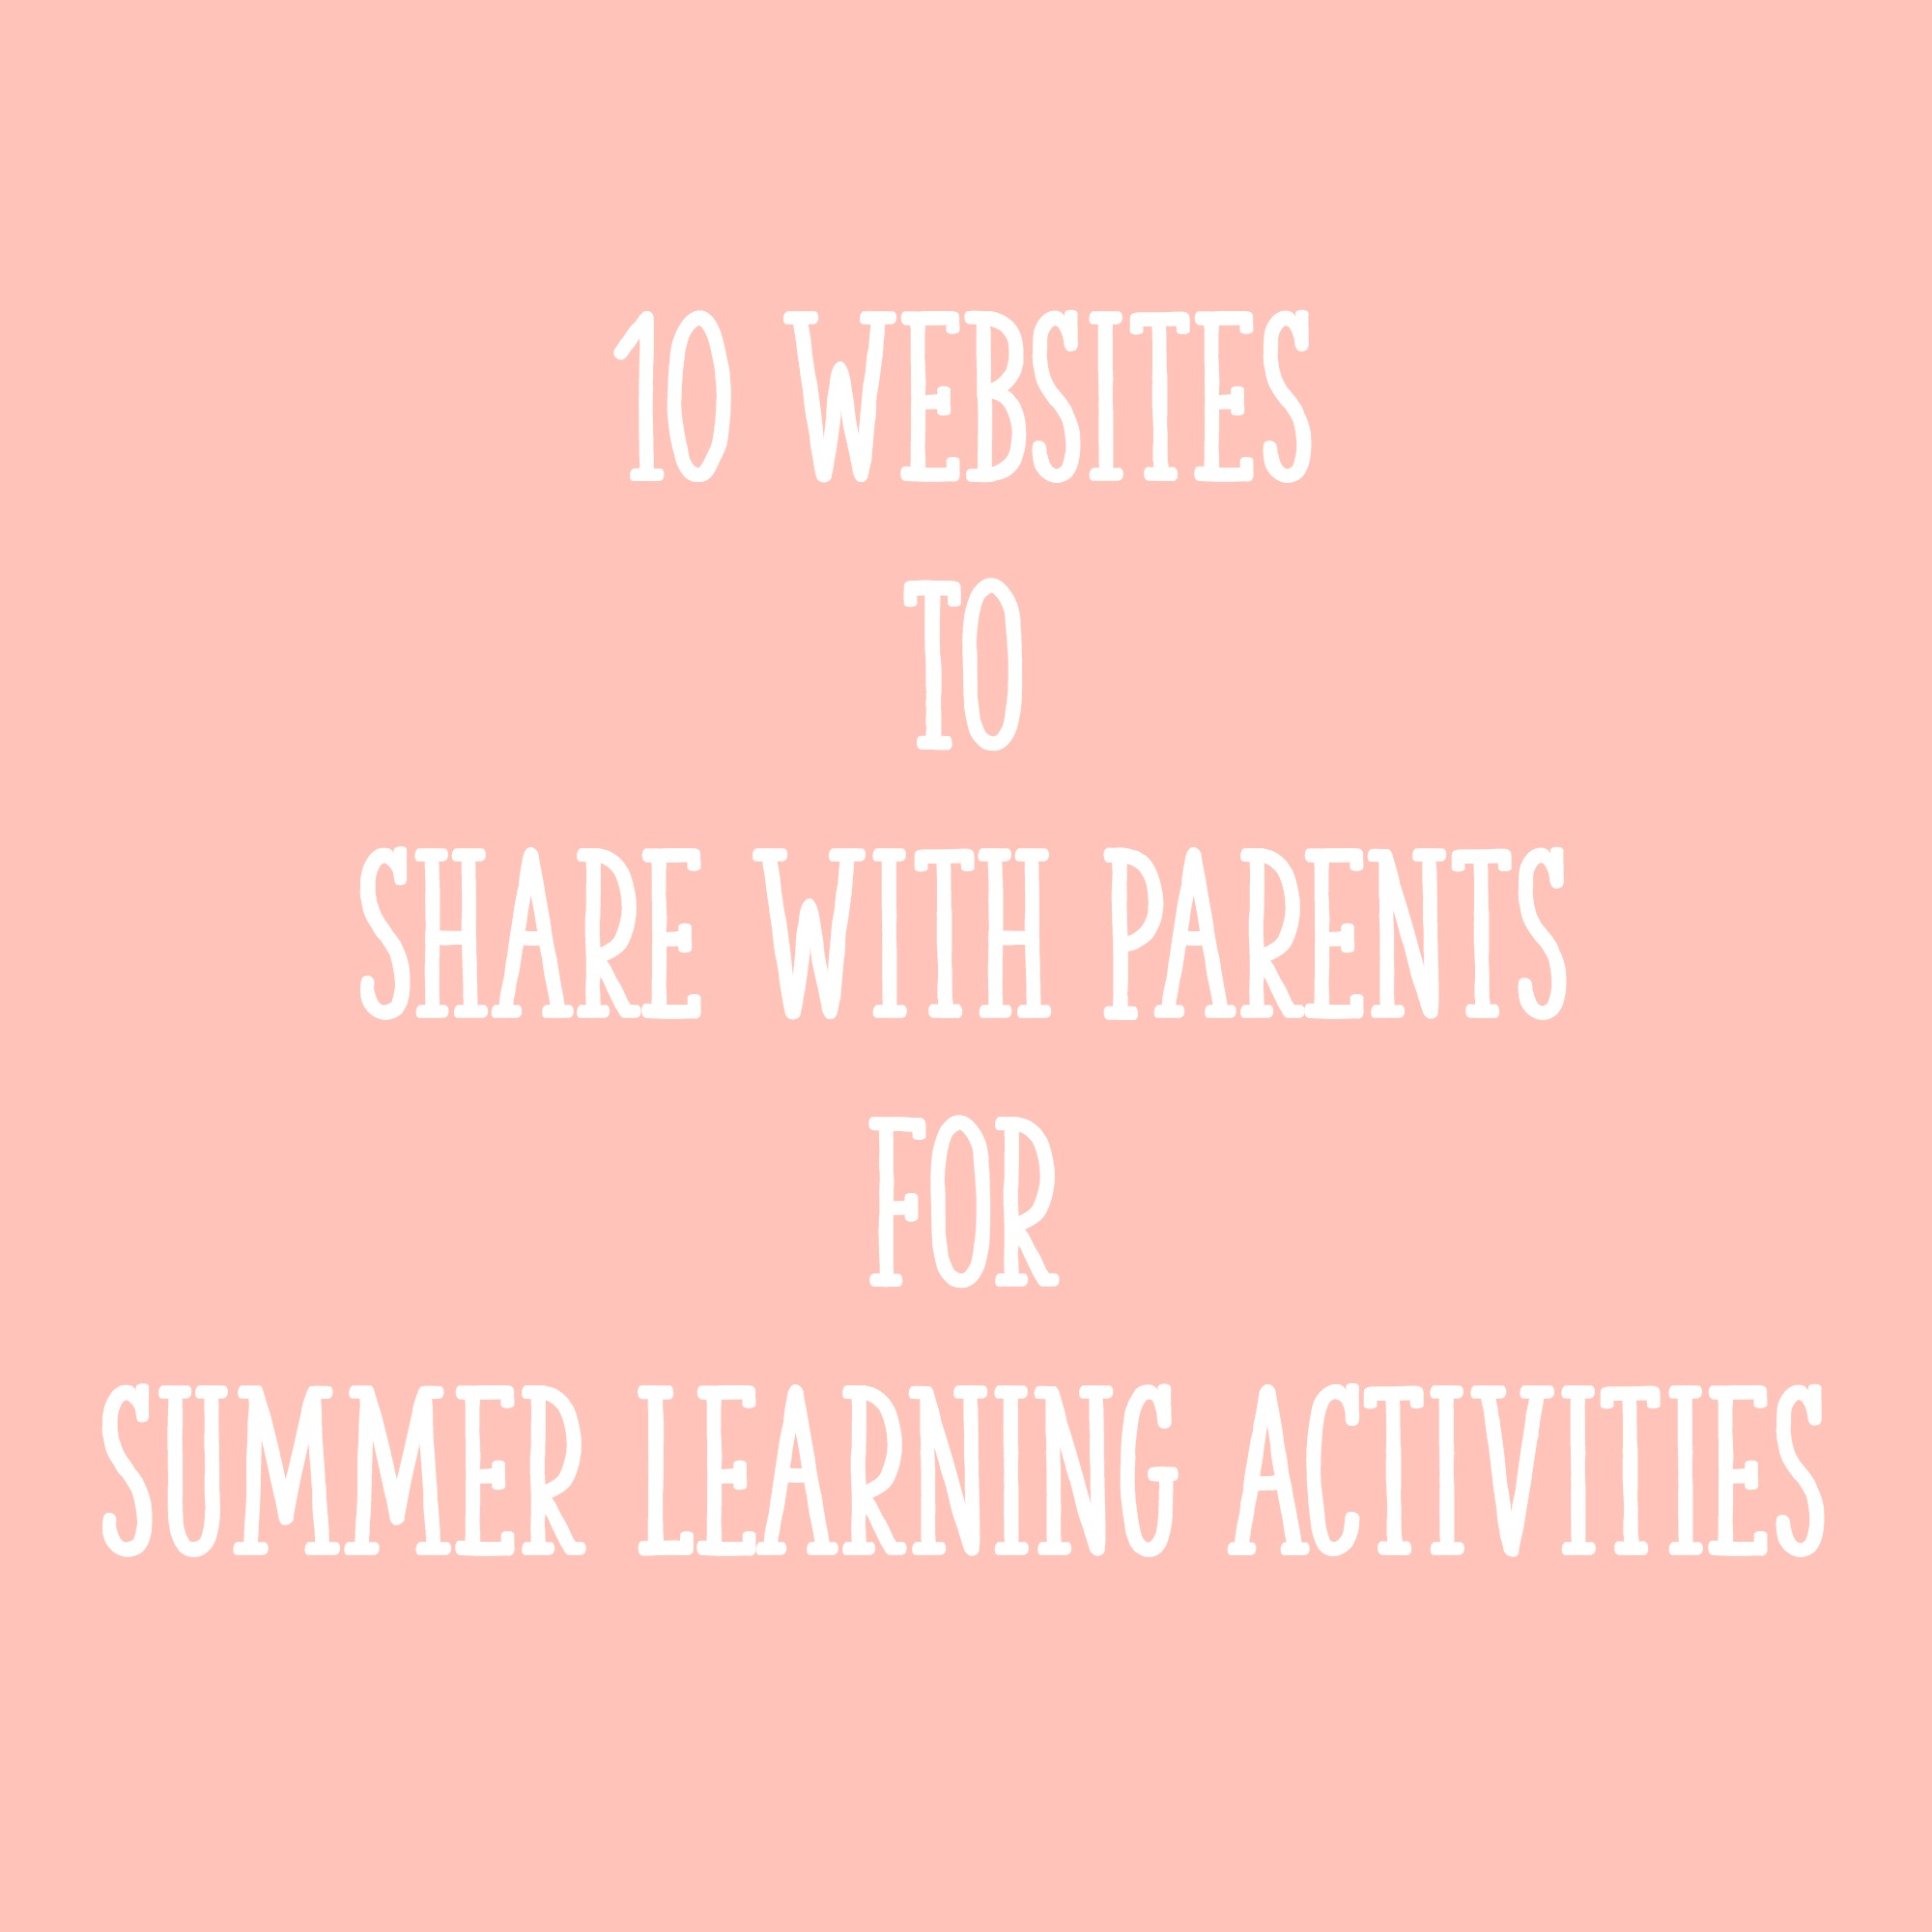 Share Websites 10 Websites To Share With Parents For Summer Learning Activities